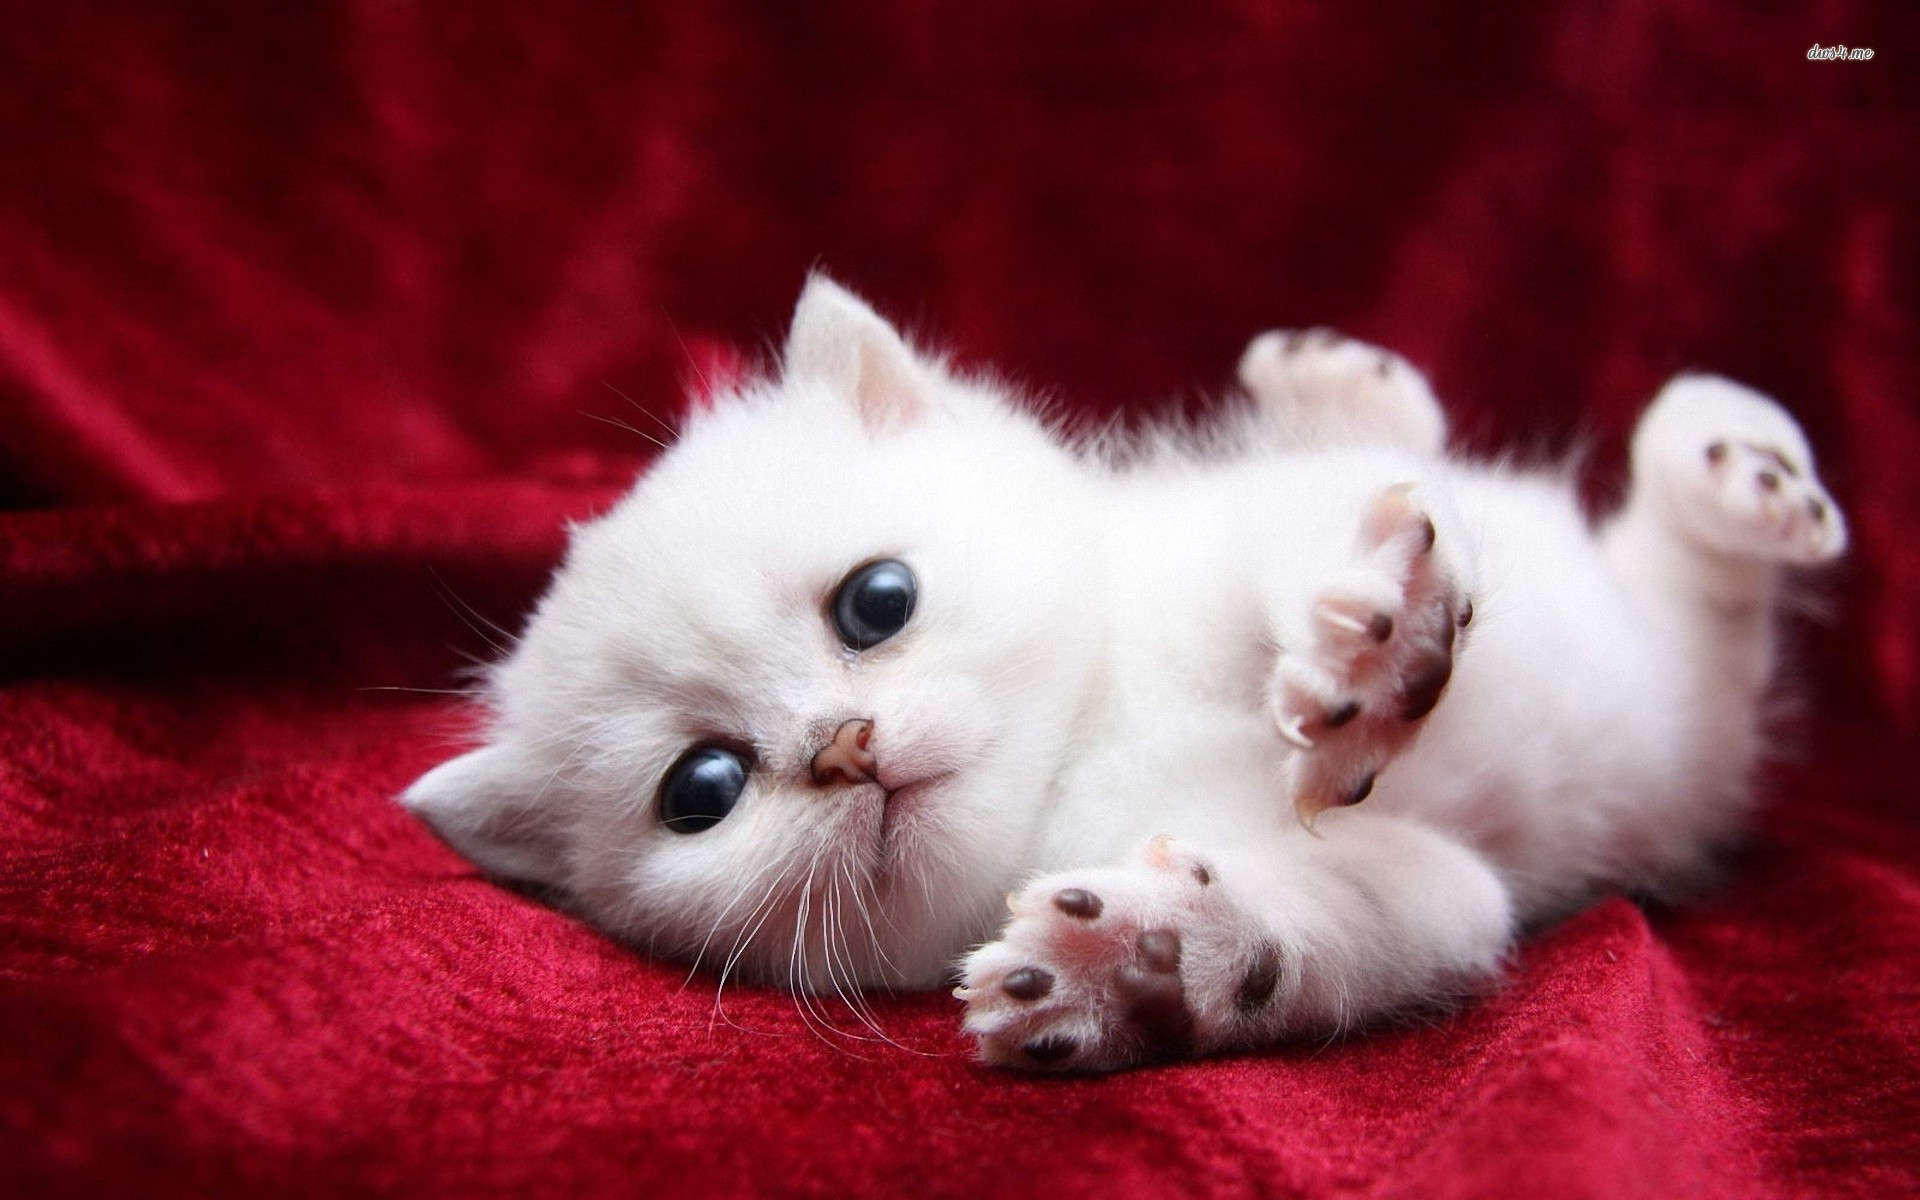 Funny kittens wallpapers 68 background pictures 1920x1080 very cute kittens wallpaper 9699 full hd wallpaper desktop res altavistaventures Choice Image